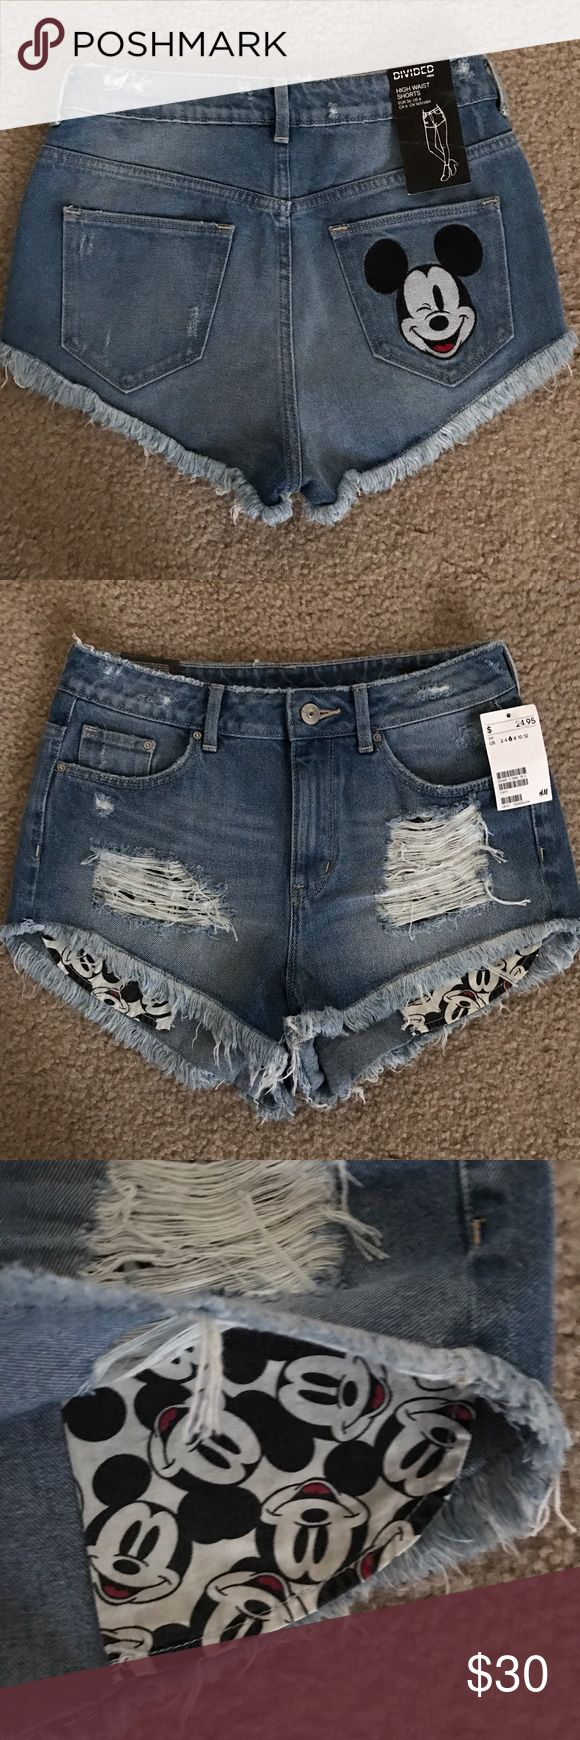 H&M Divided High Waisted Mickey Mouse Jean Shorts Size 6. New with tags. No trades H&M Shorts Jean Shorts